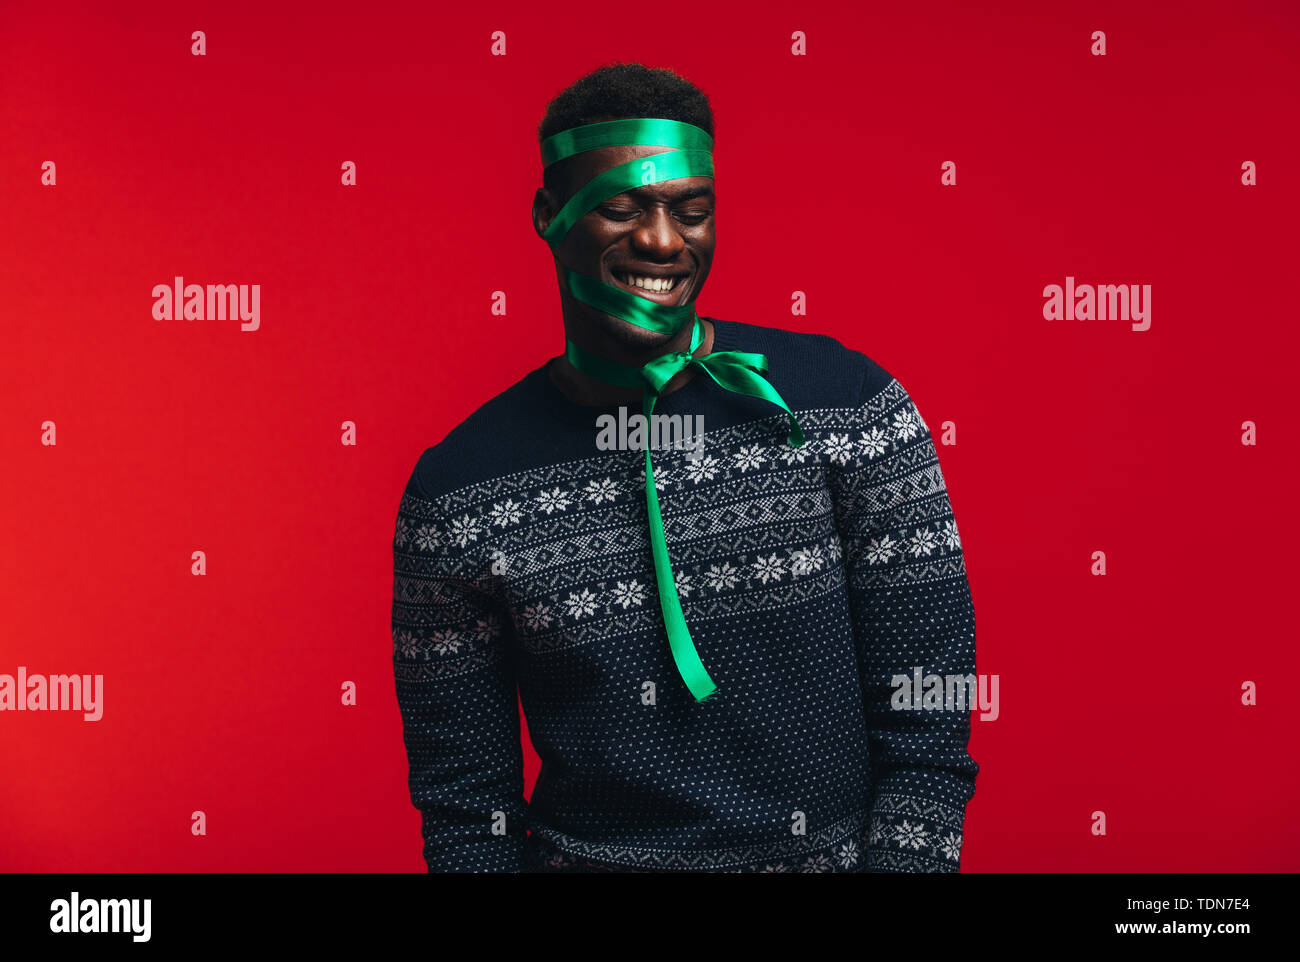 Happy african man with satin ribbon tied on his face against red background. Man wrapped as a present. - Stock Image